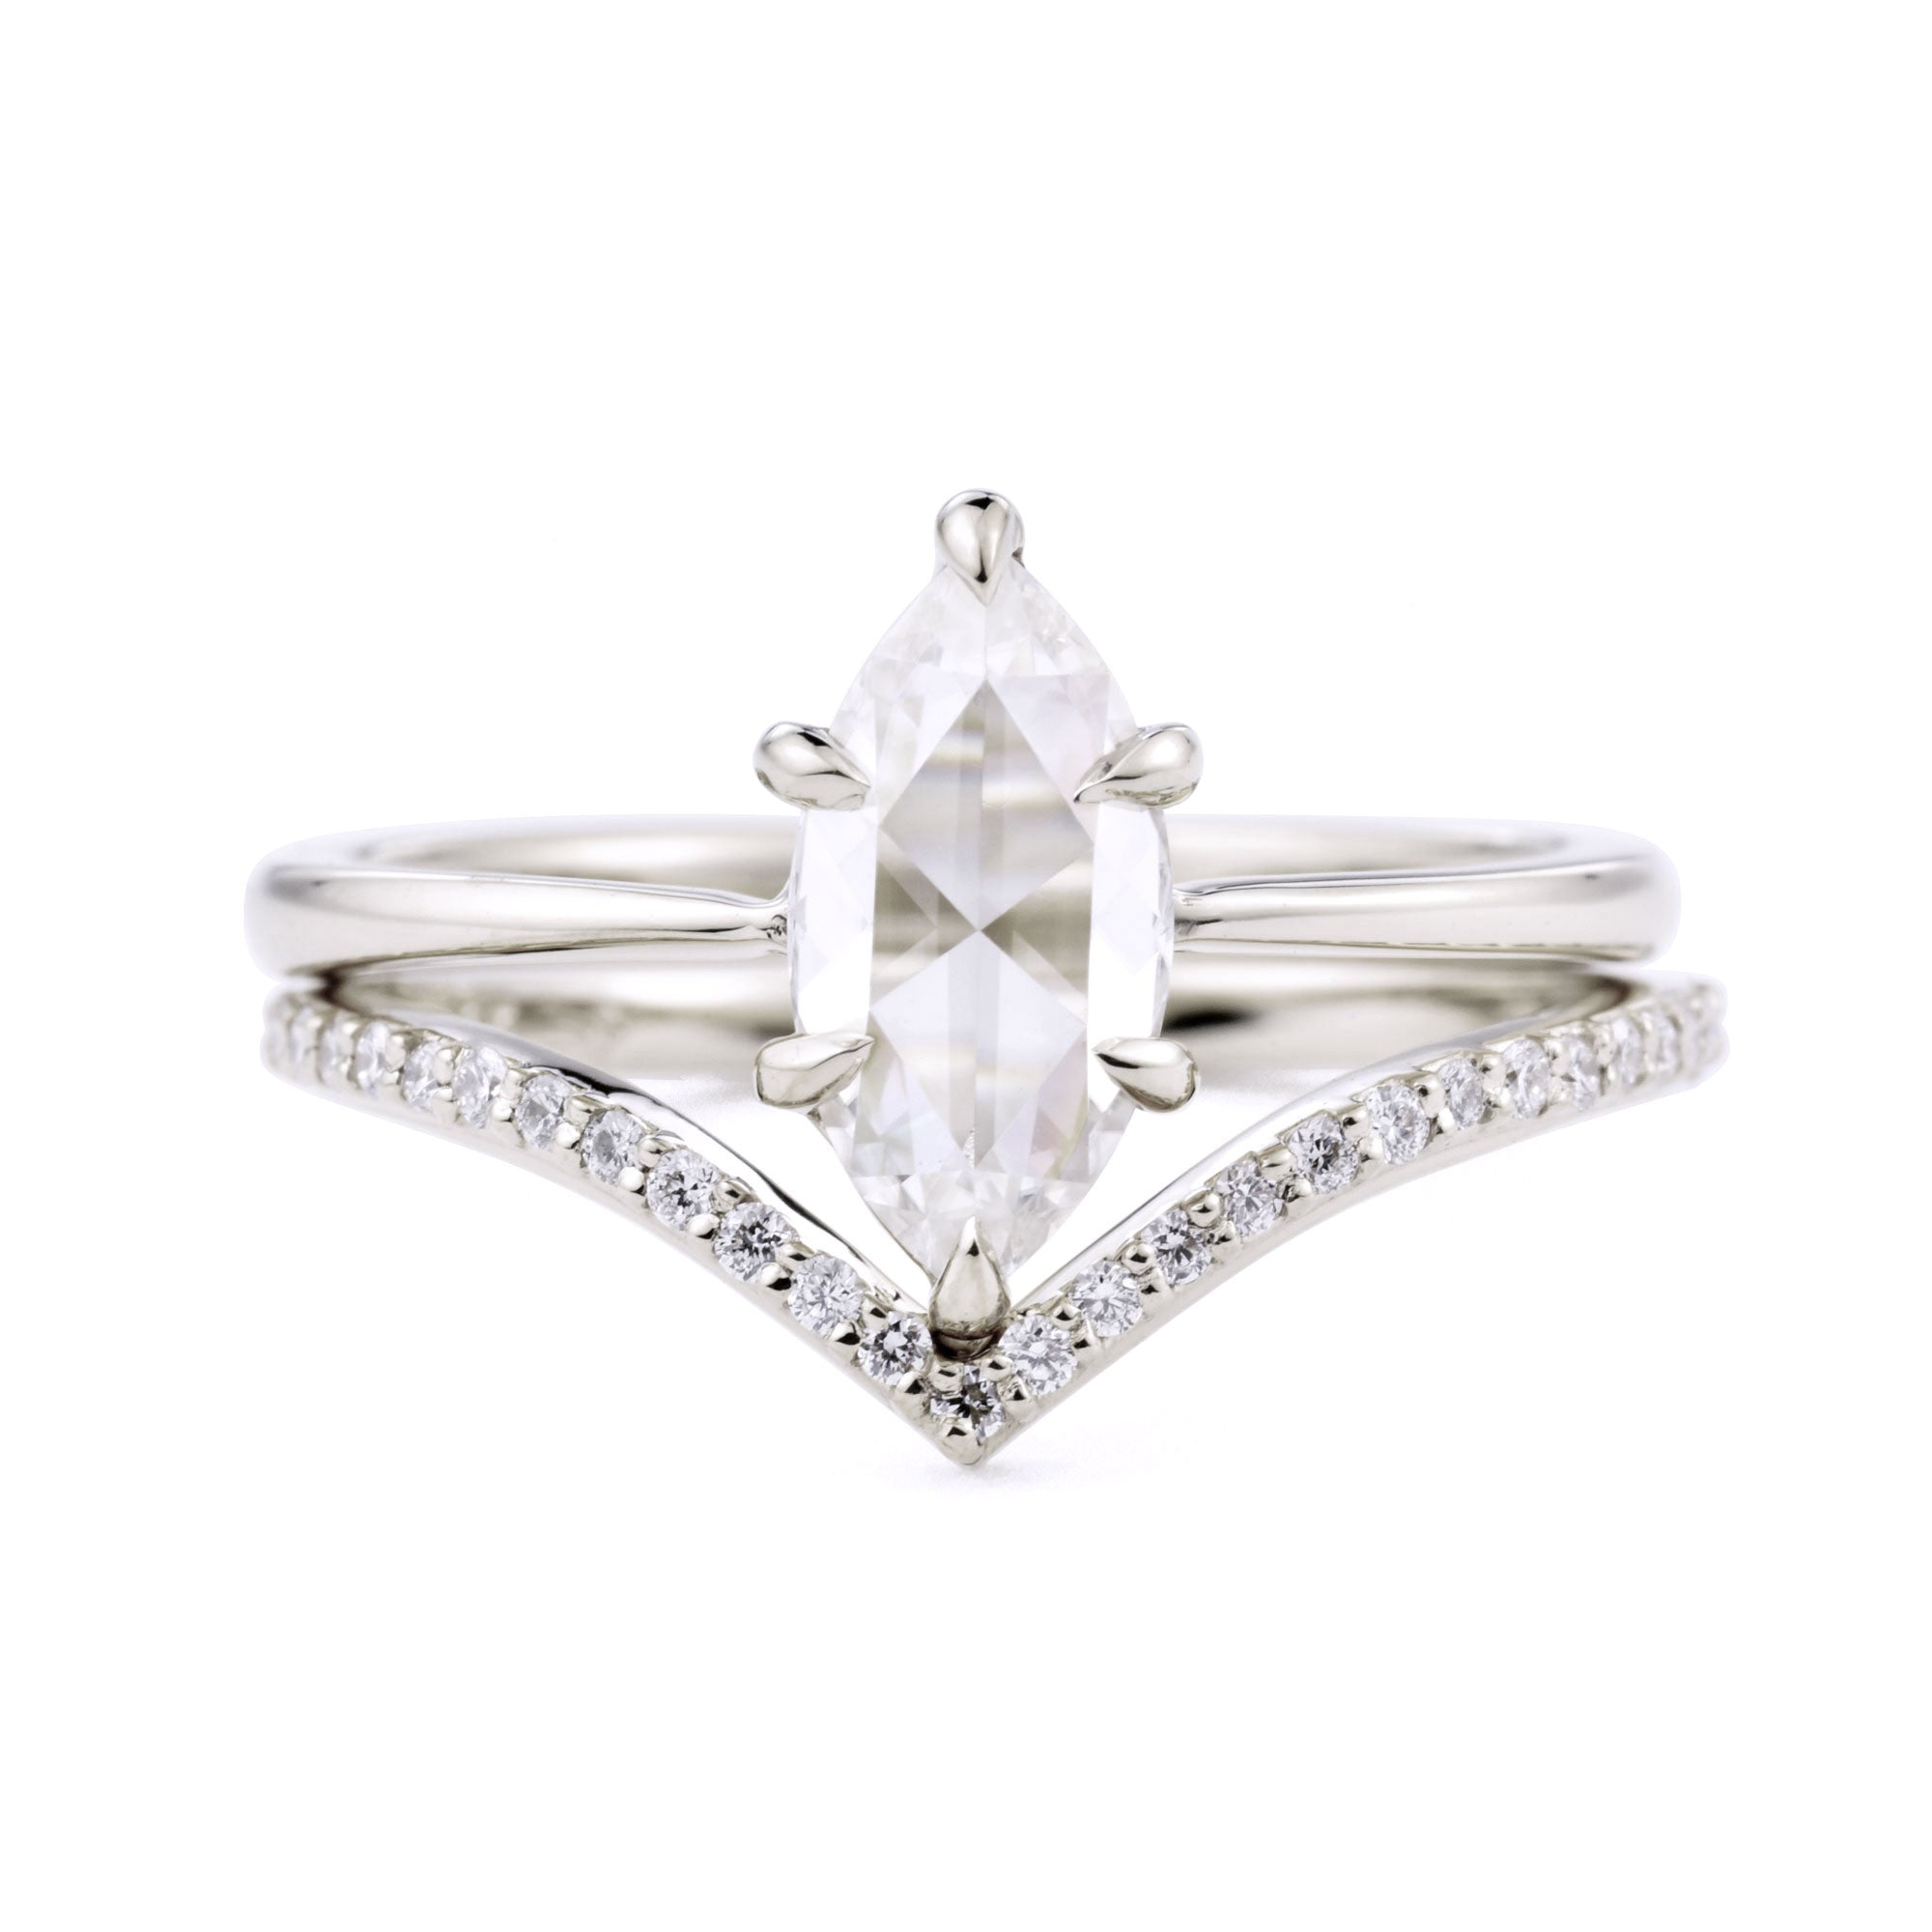 Eva Marquise Rose Cut Moissanite Ring Set